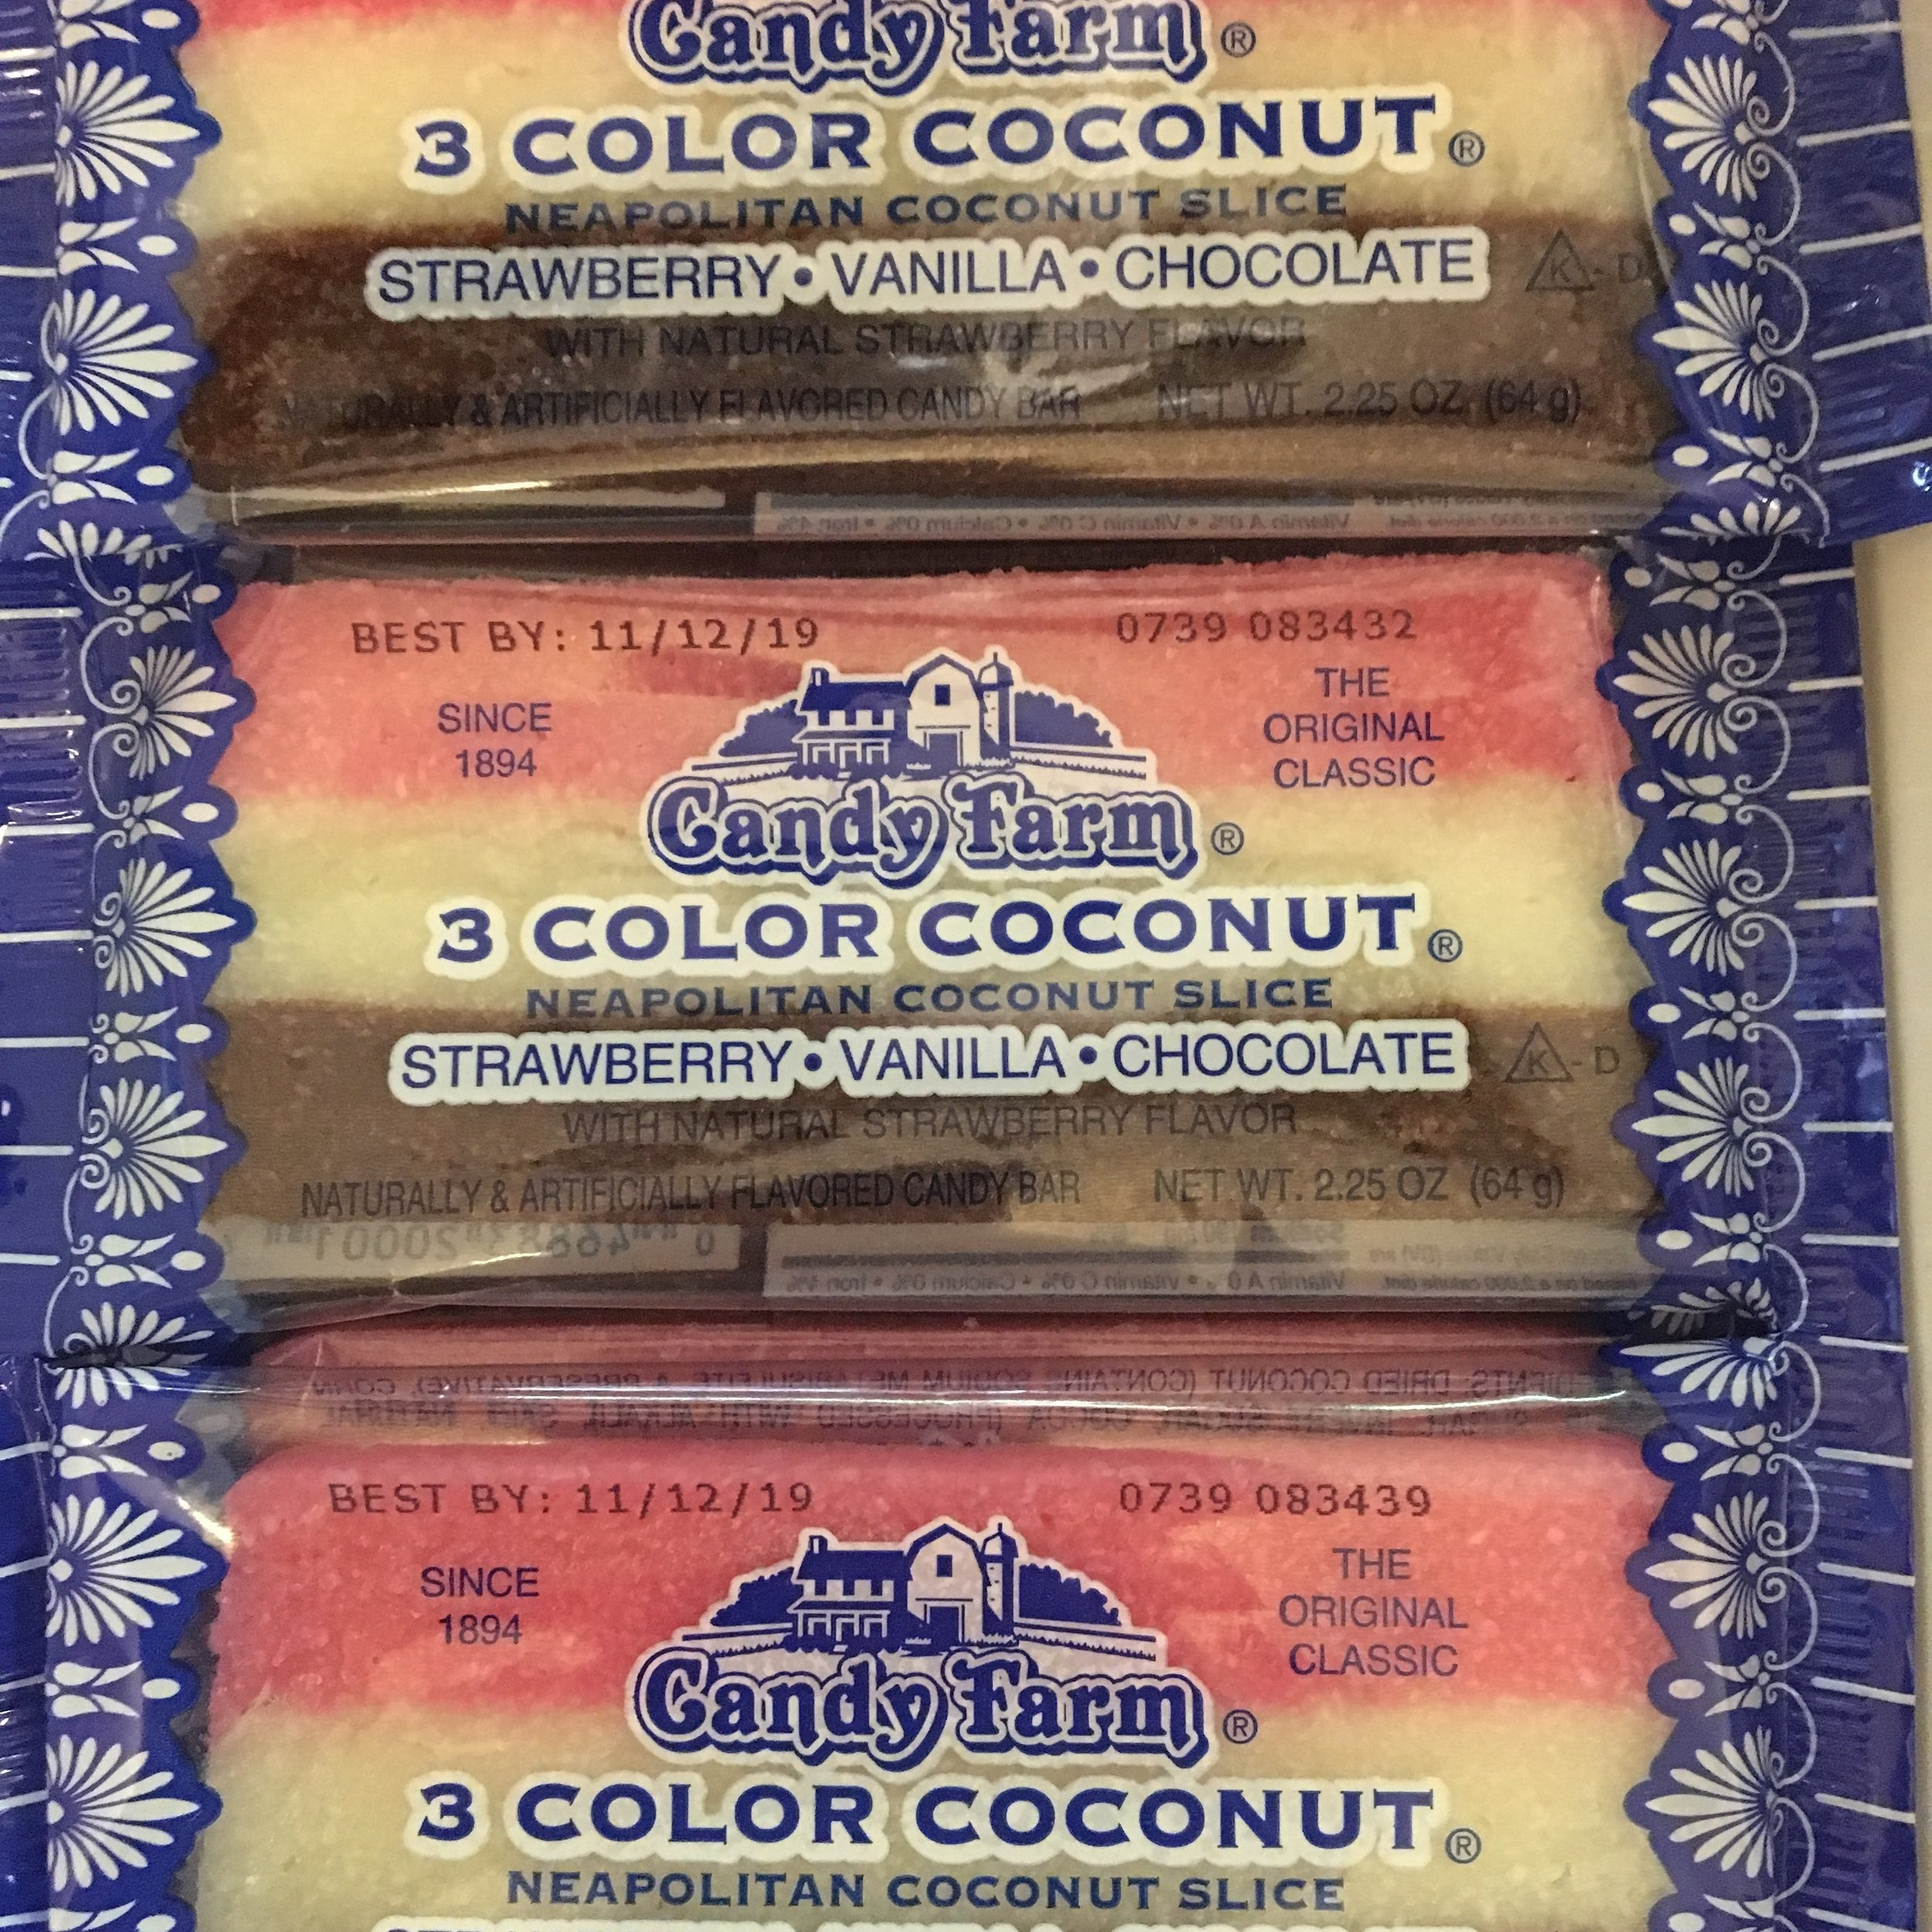 Neapolitan Coconut Slices